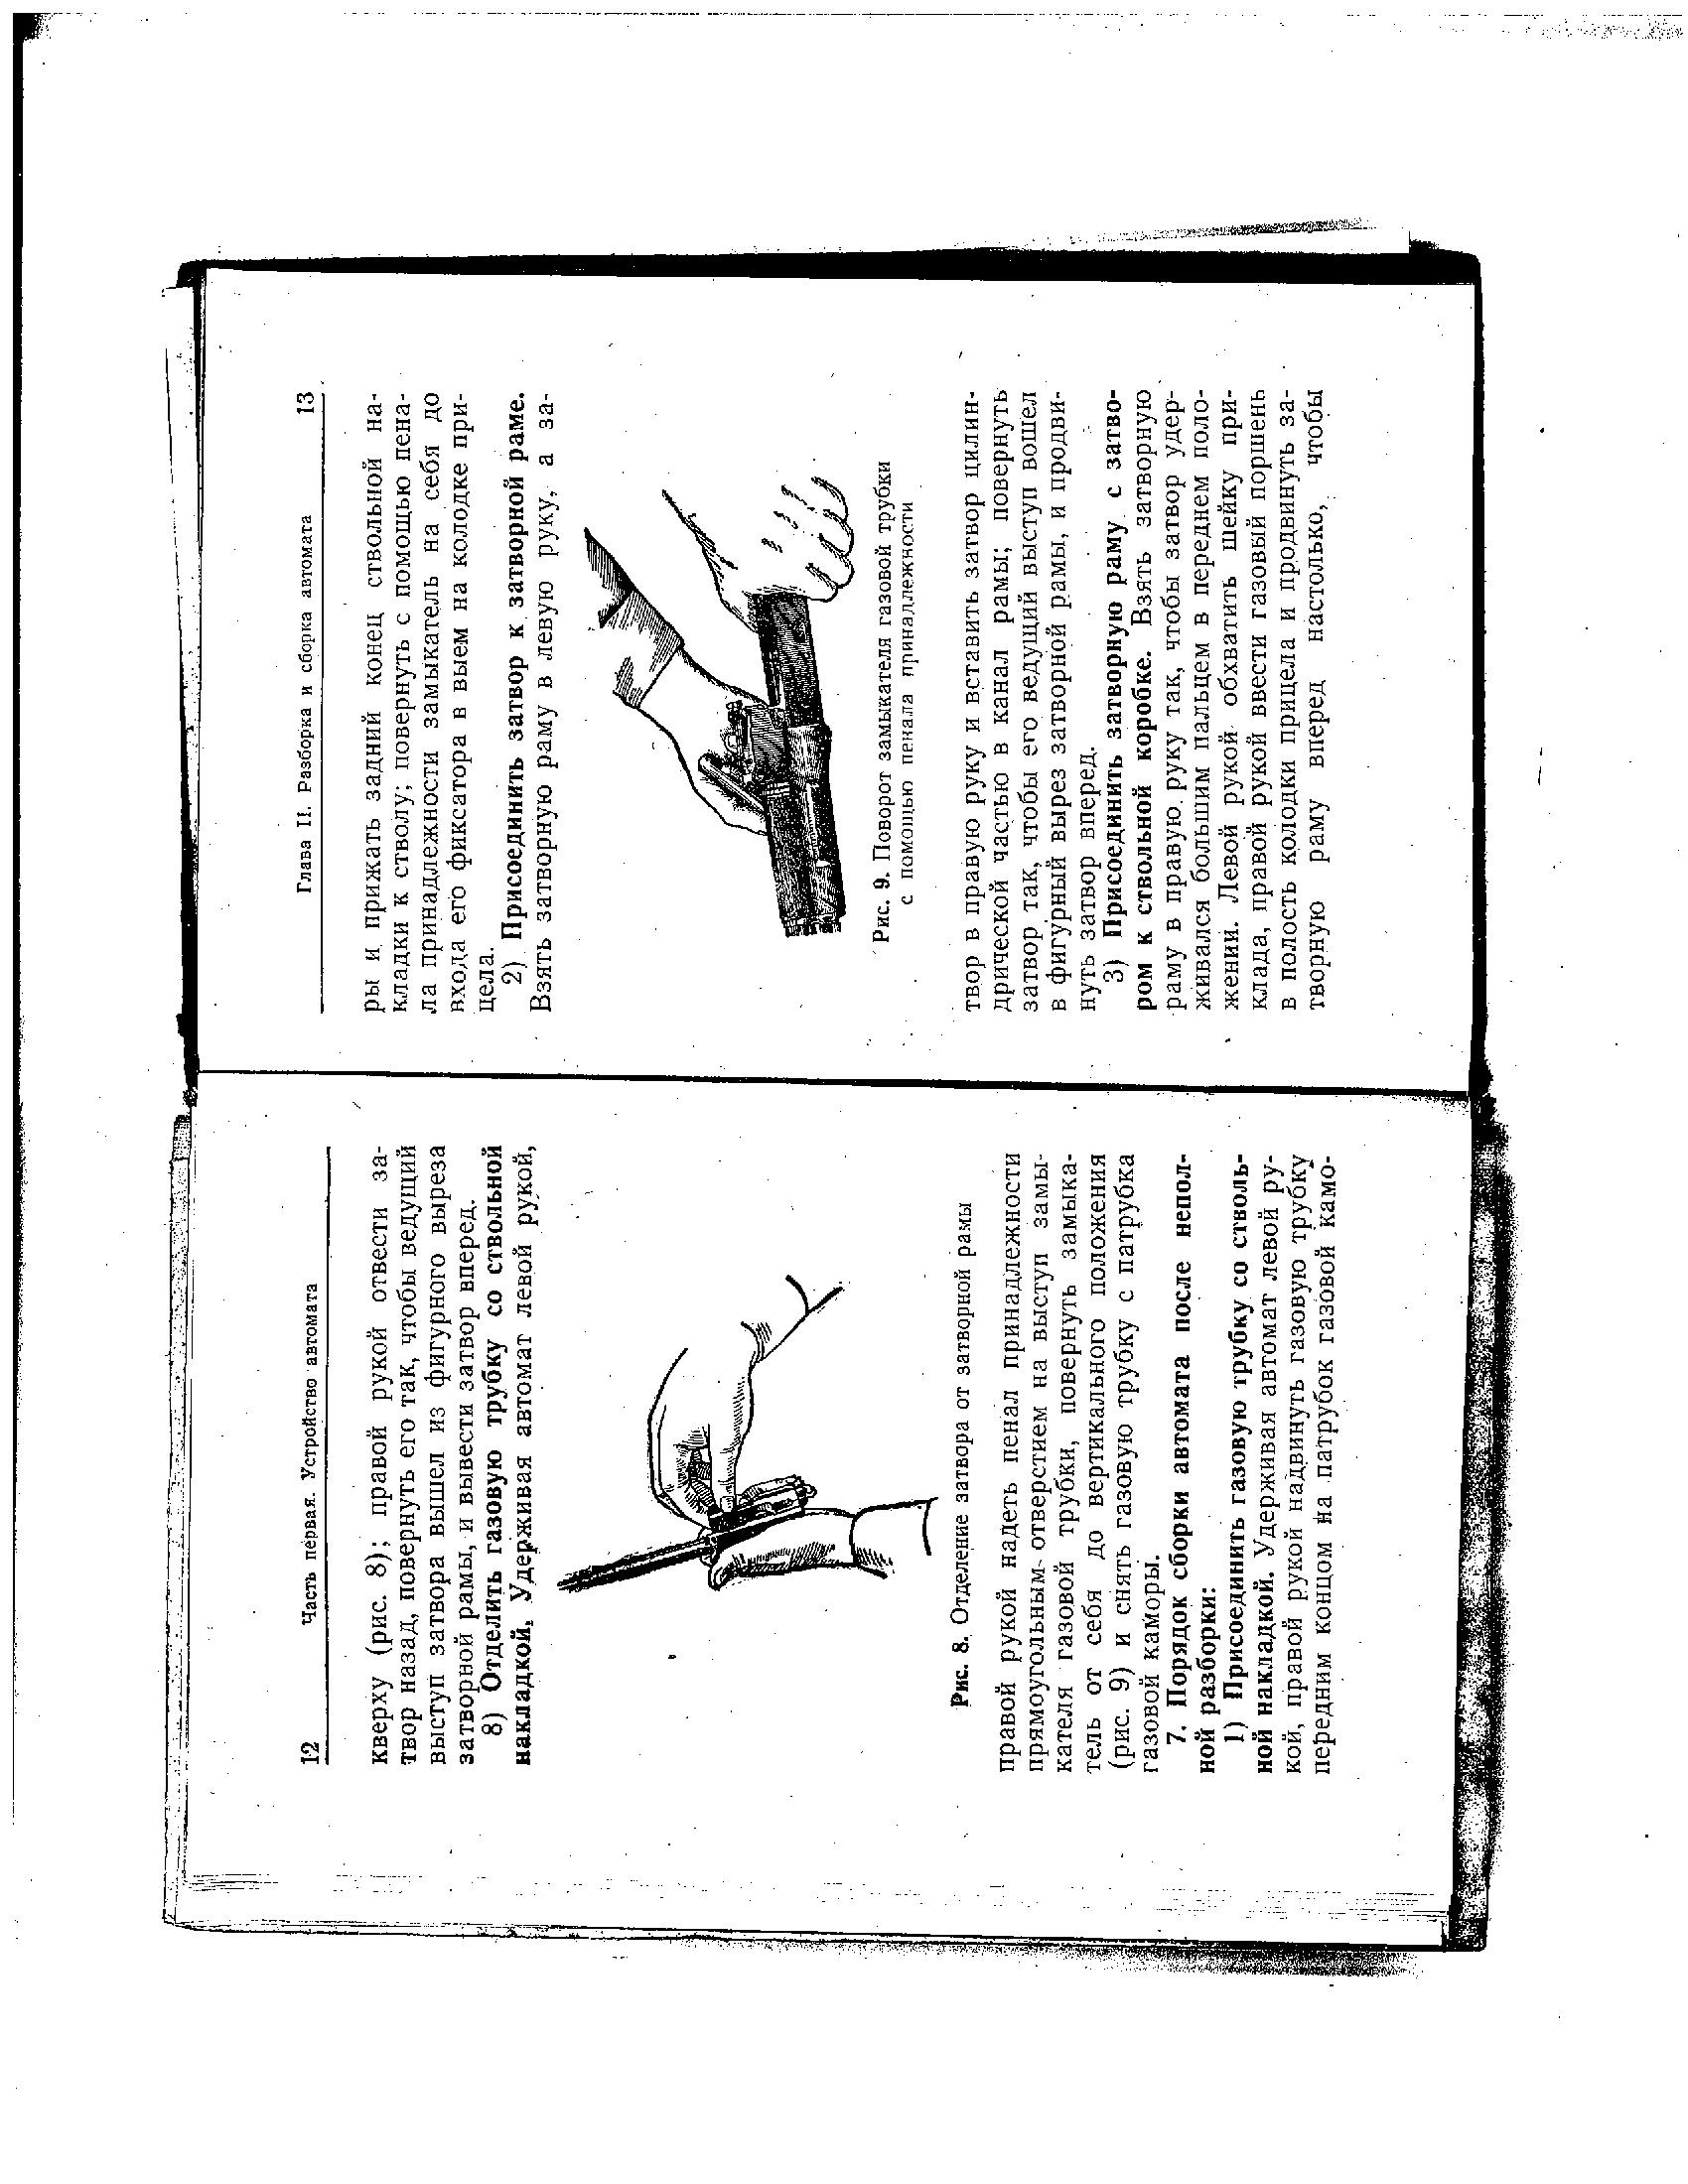 The Official Soviet AKM Manual